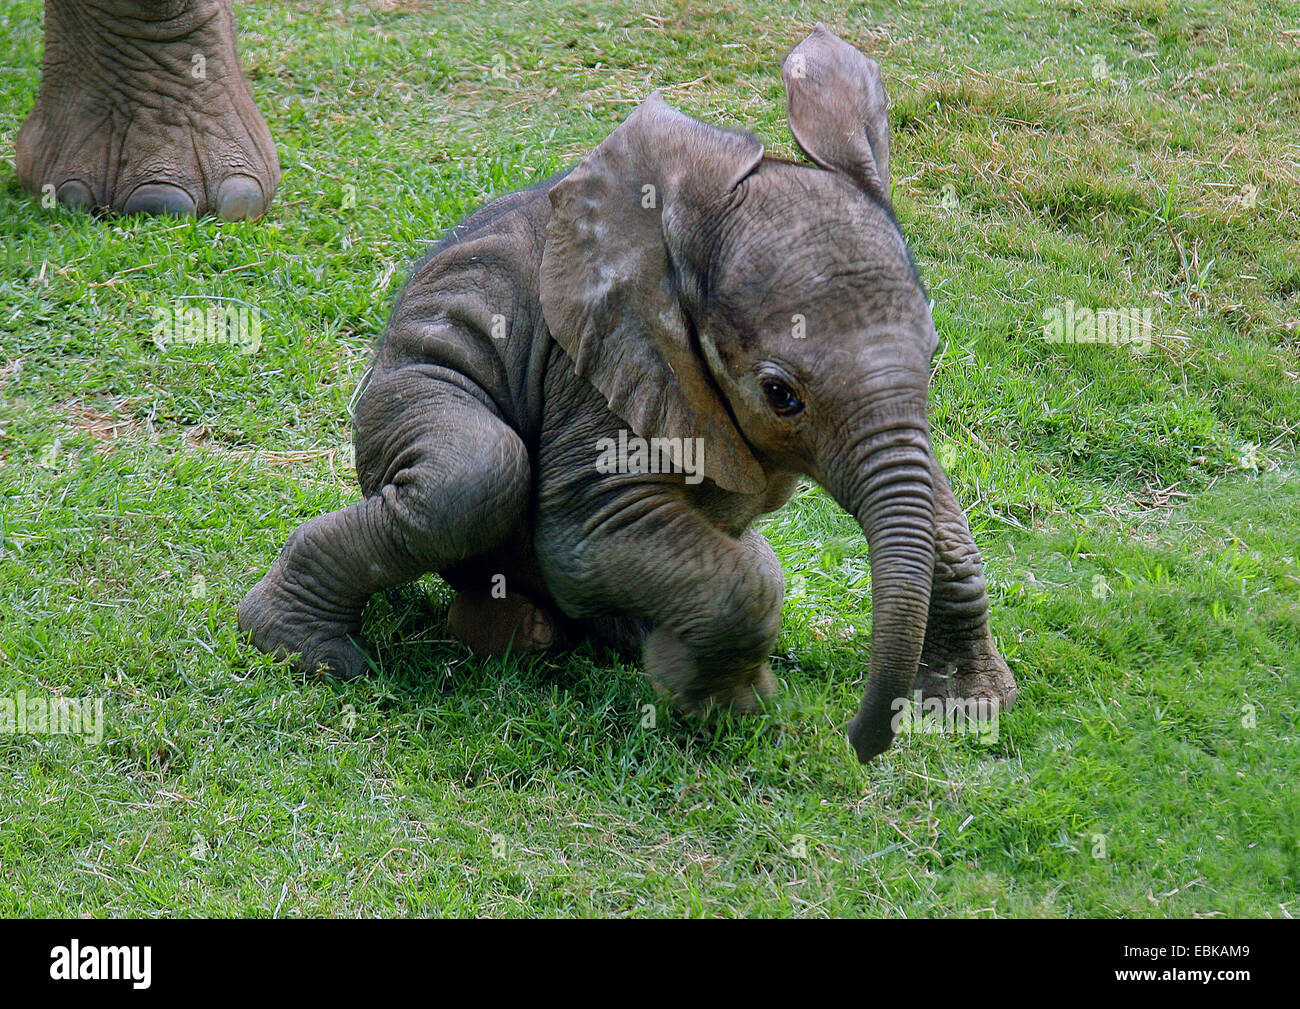 African elephant (Loxodonta africana), baby elephant in a meadow, Kenya, Amboseli National Park - Stock Image